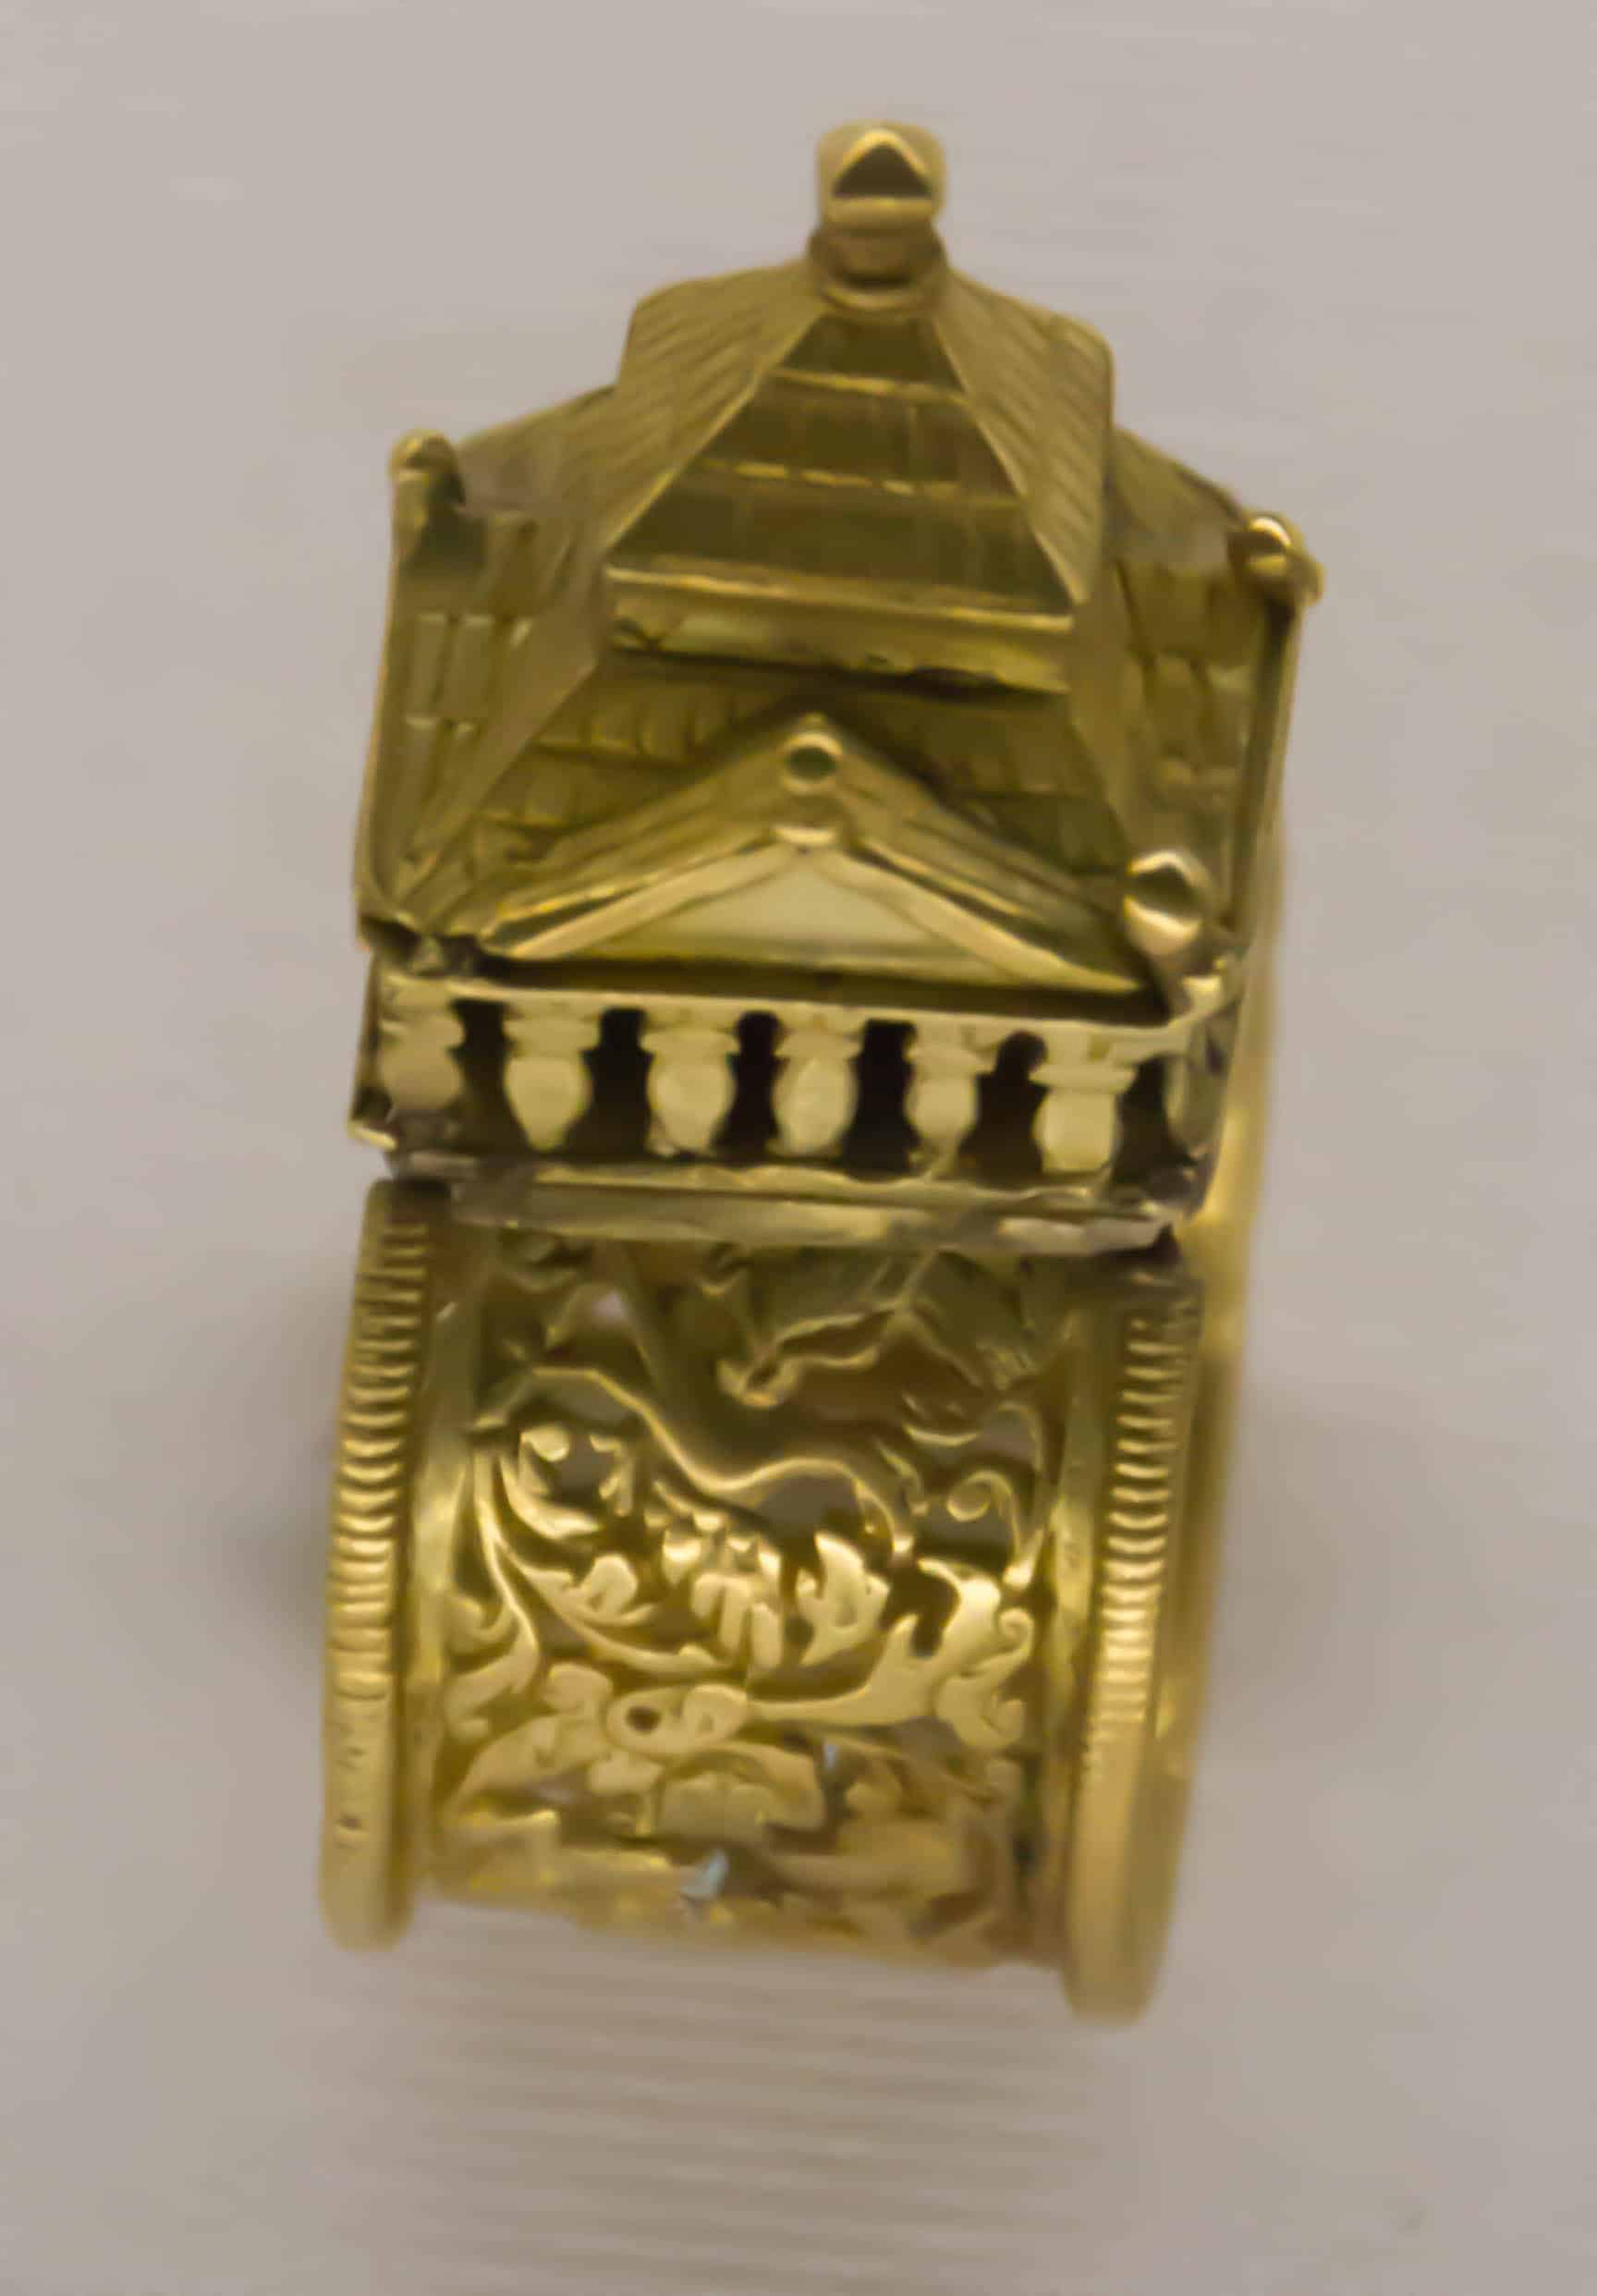 Jewish Wedding Ring Western Europe 16th 17th Cen.jpg